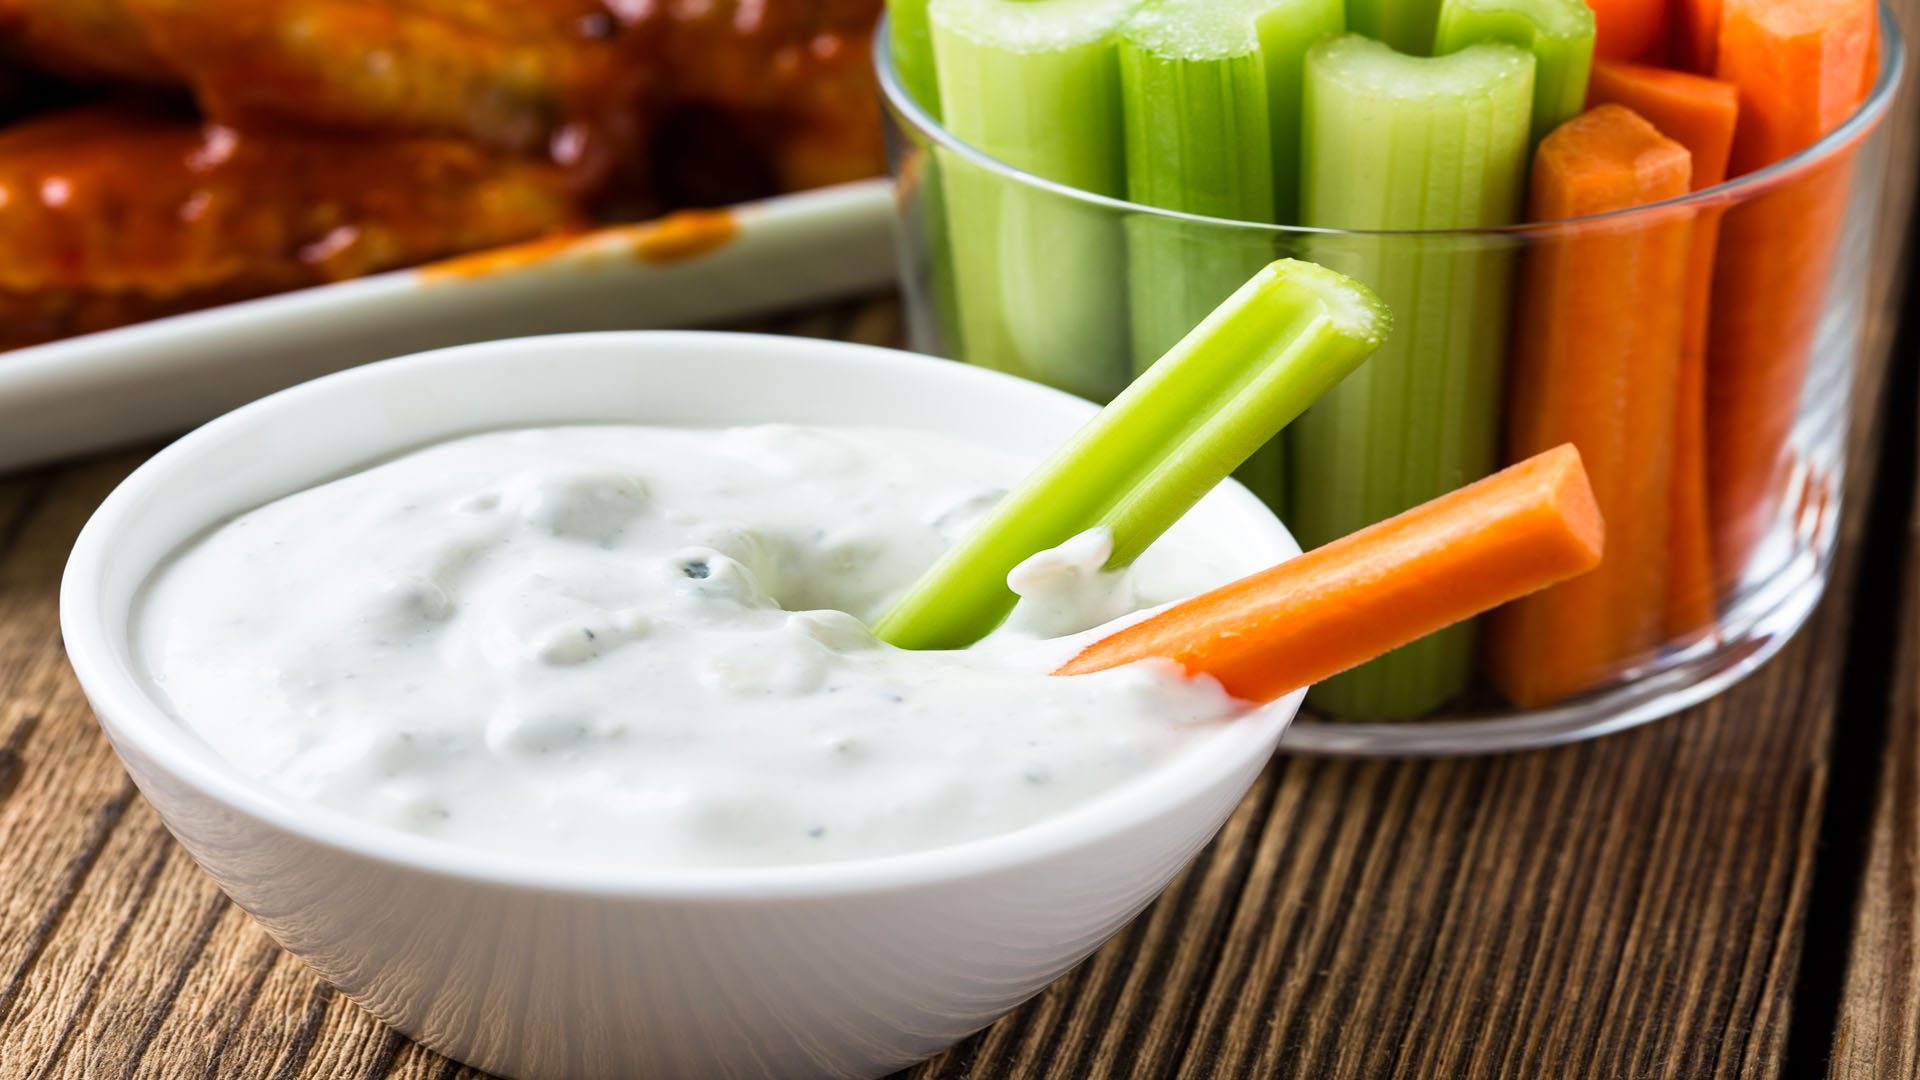 White bowl of blue cheese dressing with a carrot and celery stick sticking out and a clear bowl or celery and carrot sticks behind it. Behind that is a plate of bbq wings.